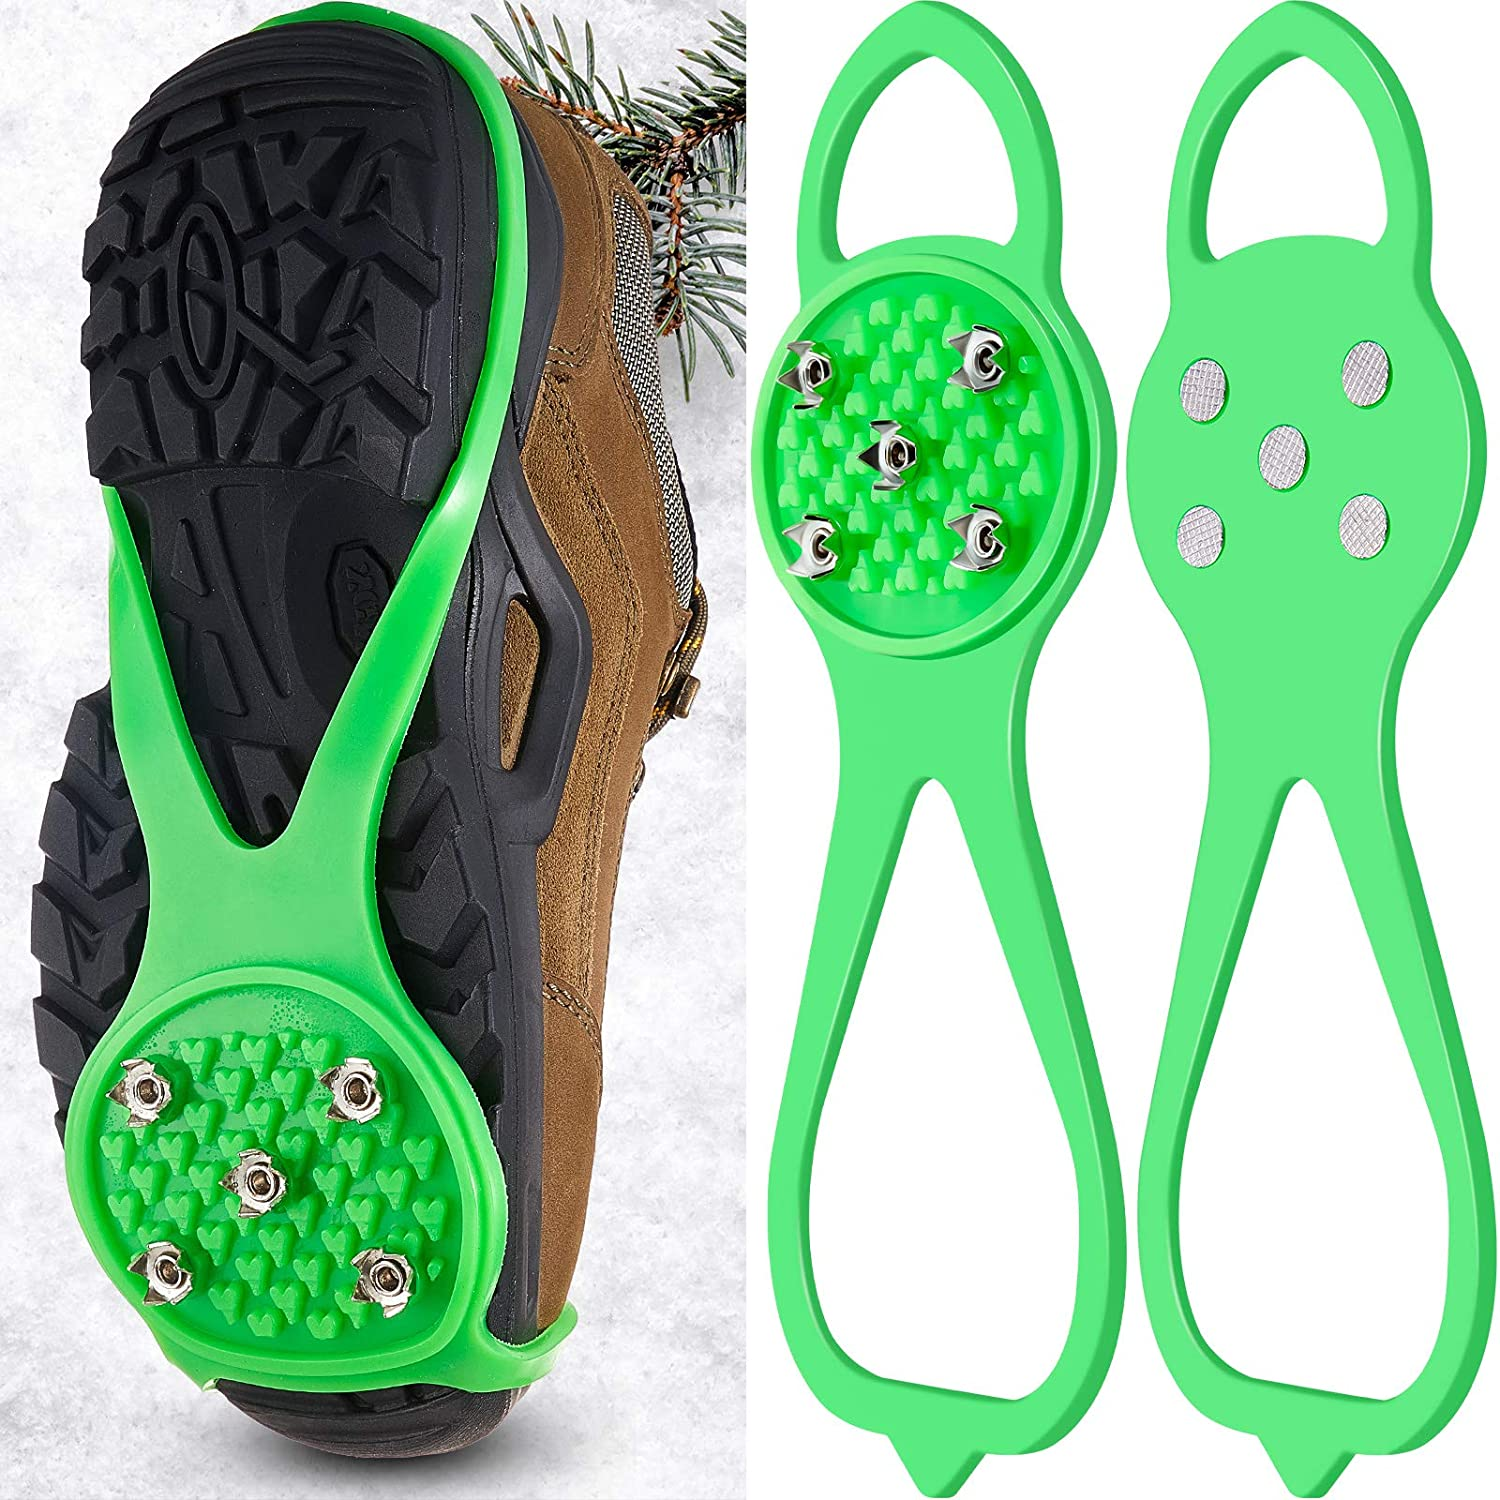 1 Pair Non-Slip Gripper Spikes Claw Universal Ice No Slip Snow Shoe Spikes Anti-Skid Snow Ice Shoe Spikes for Hiking Skiing Walking Mountaineering Shoes and Boots